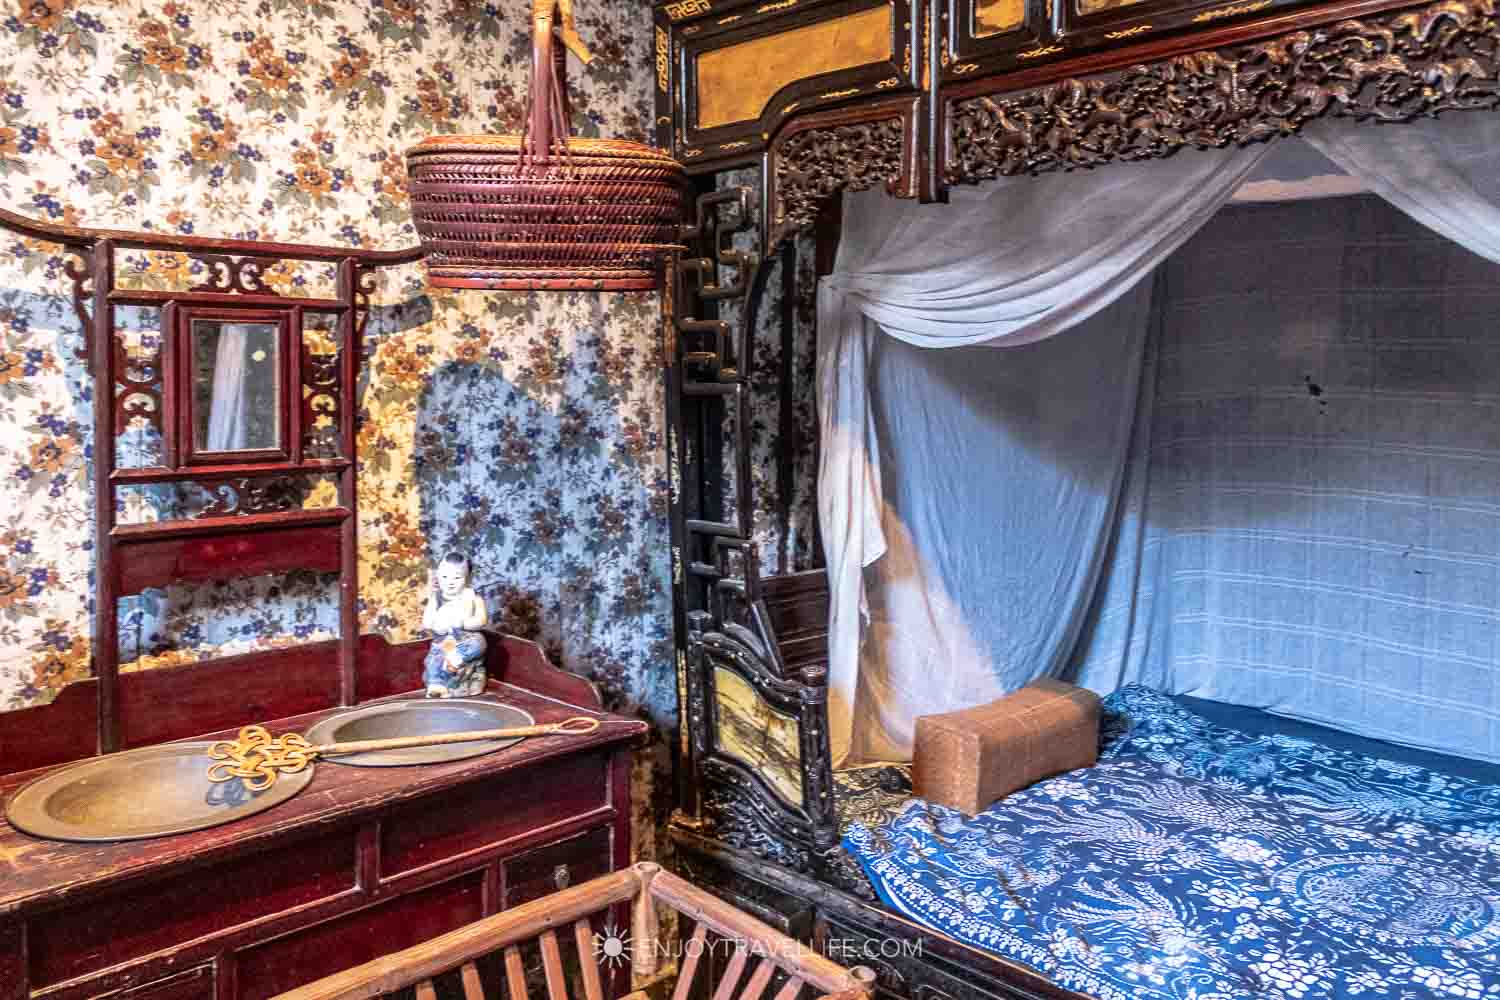 Chinese House bedroom at the Peabody Essex Museum in Salem MA